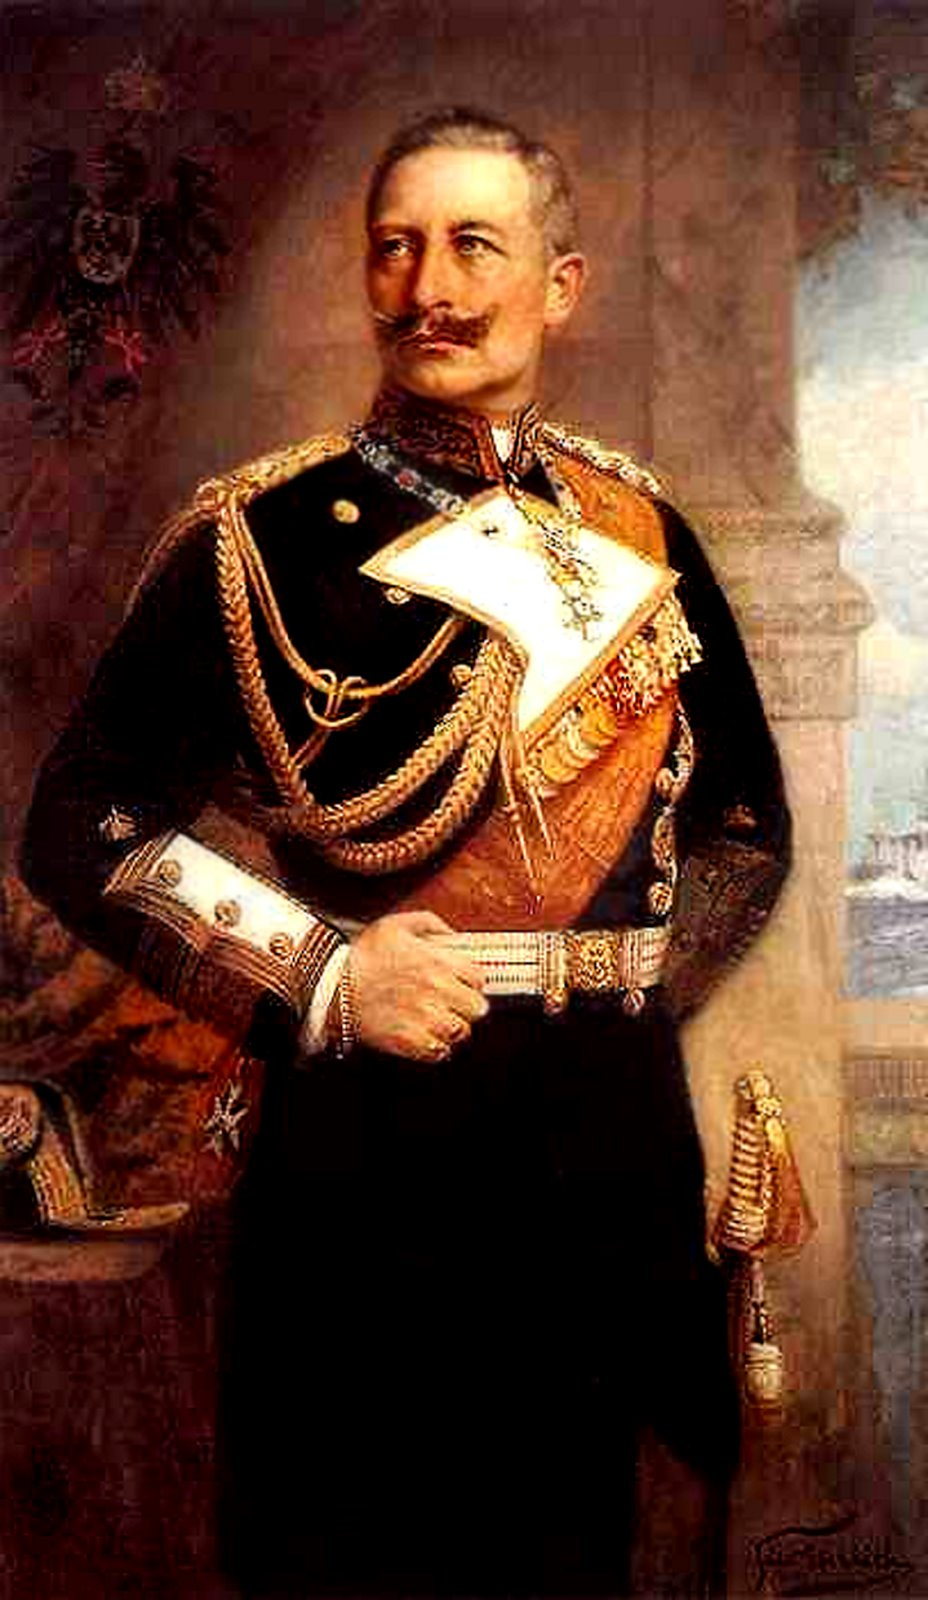 A typical portrait of the Kaiser, with his left arm carefully concealed